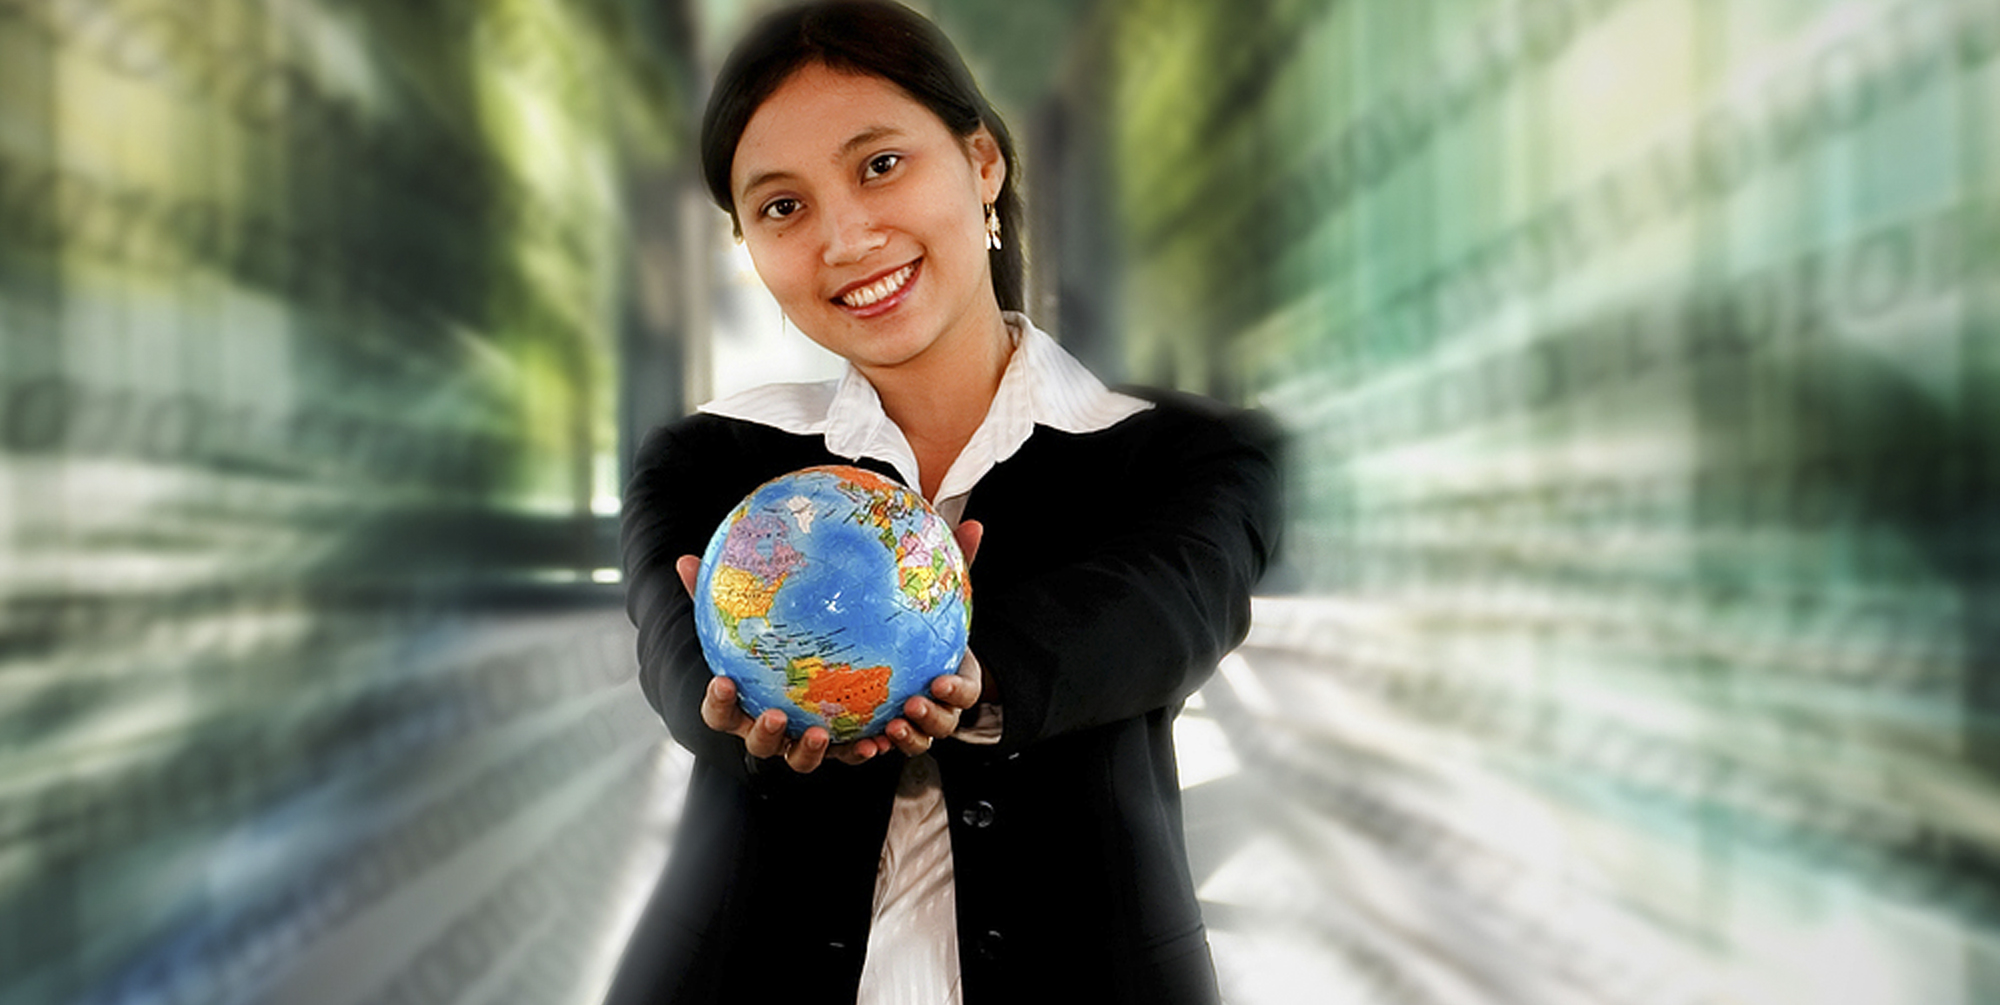 Woman wearing a suit holding a globe in outstretched hands